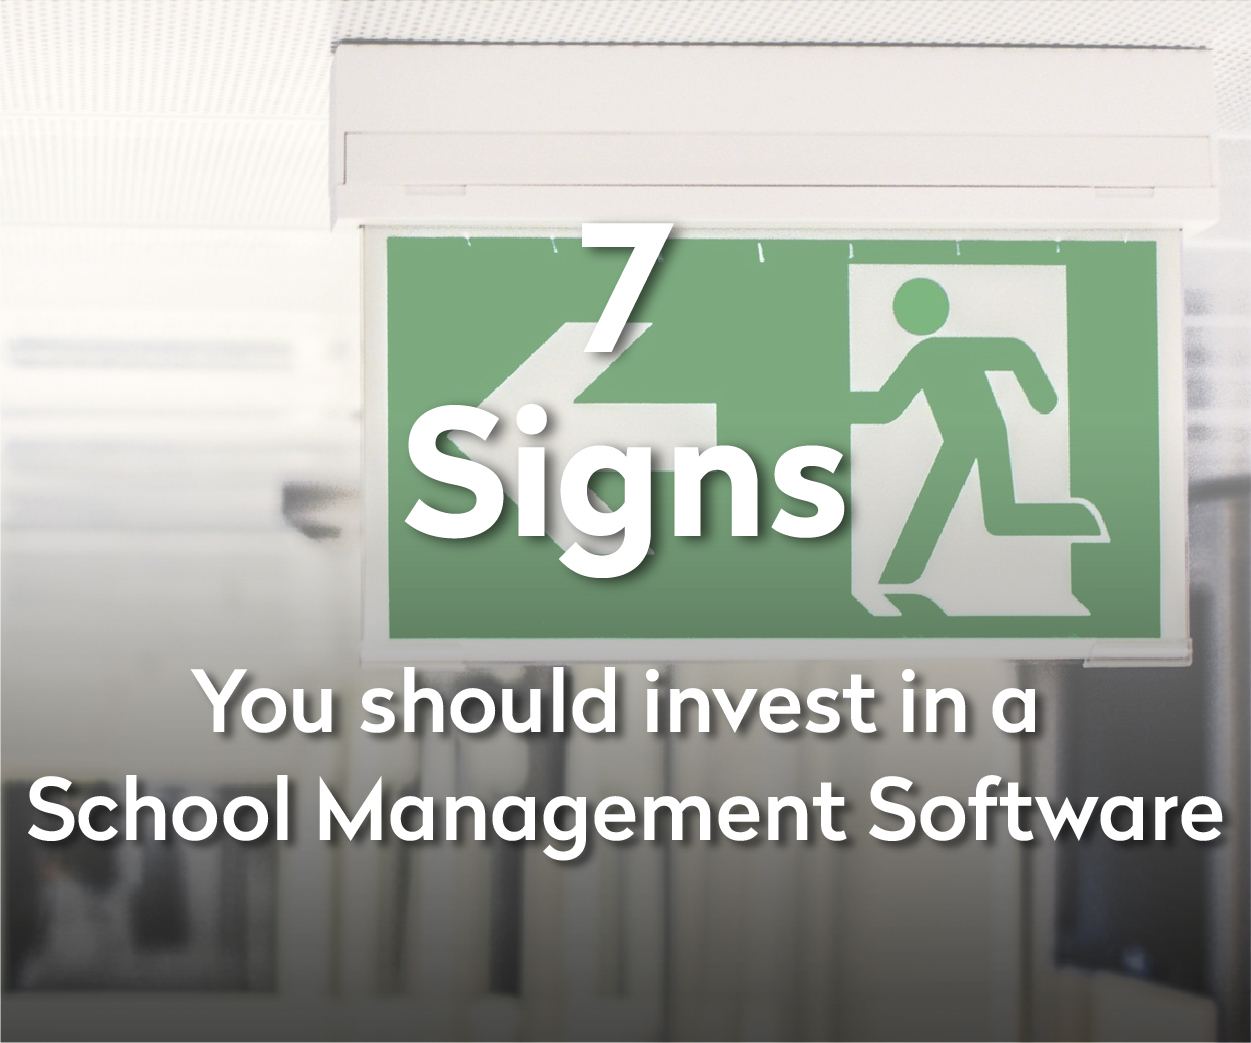 Do You Need School Management Software? 7 Signs to Look for